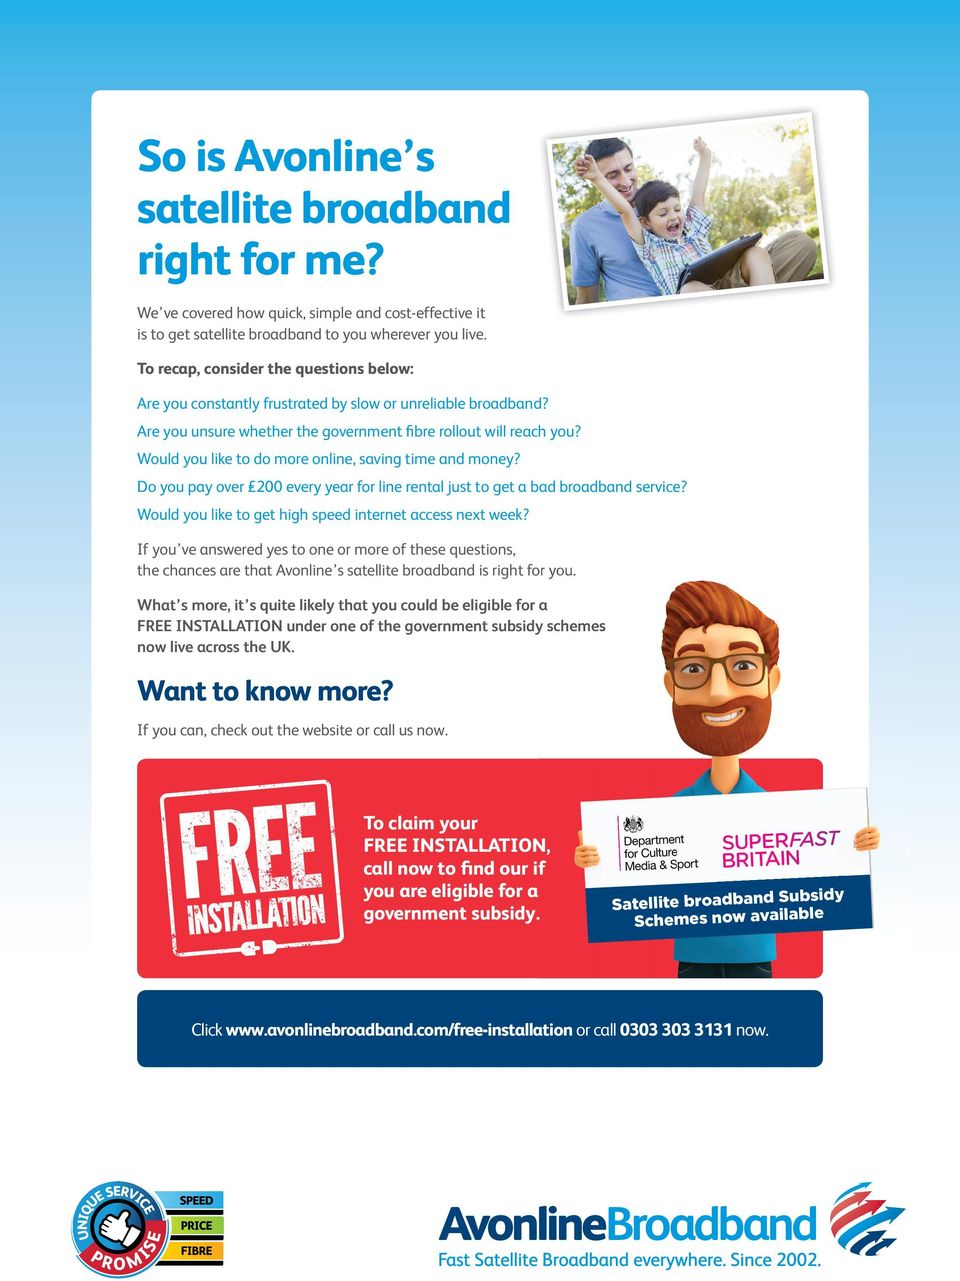 Would you like to do more online, saving time and money? Do you pay over 200 every year for line rental just to get a bad broadband service? Would you like to get high speed internet access next week?